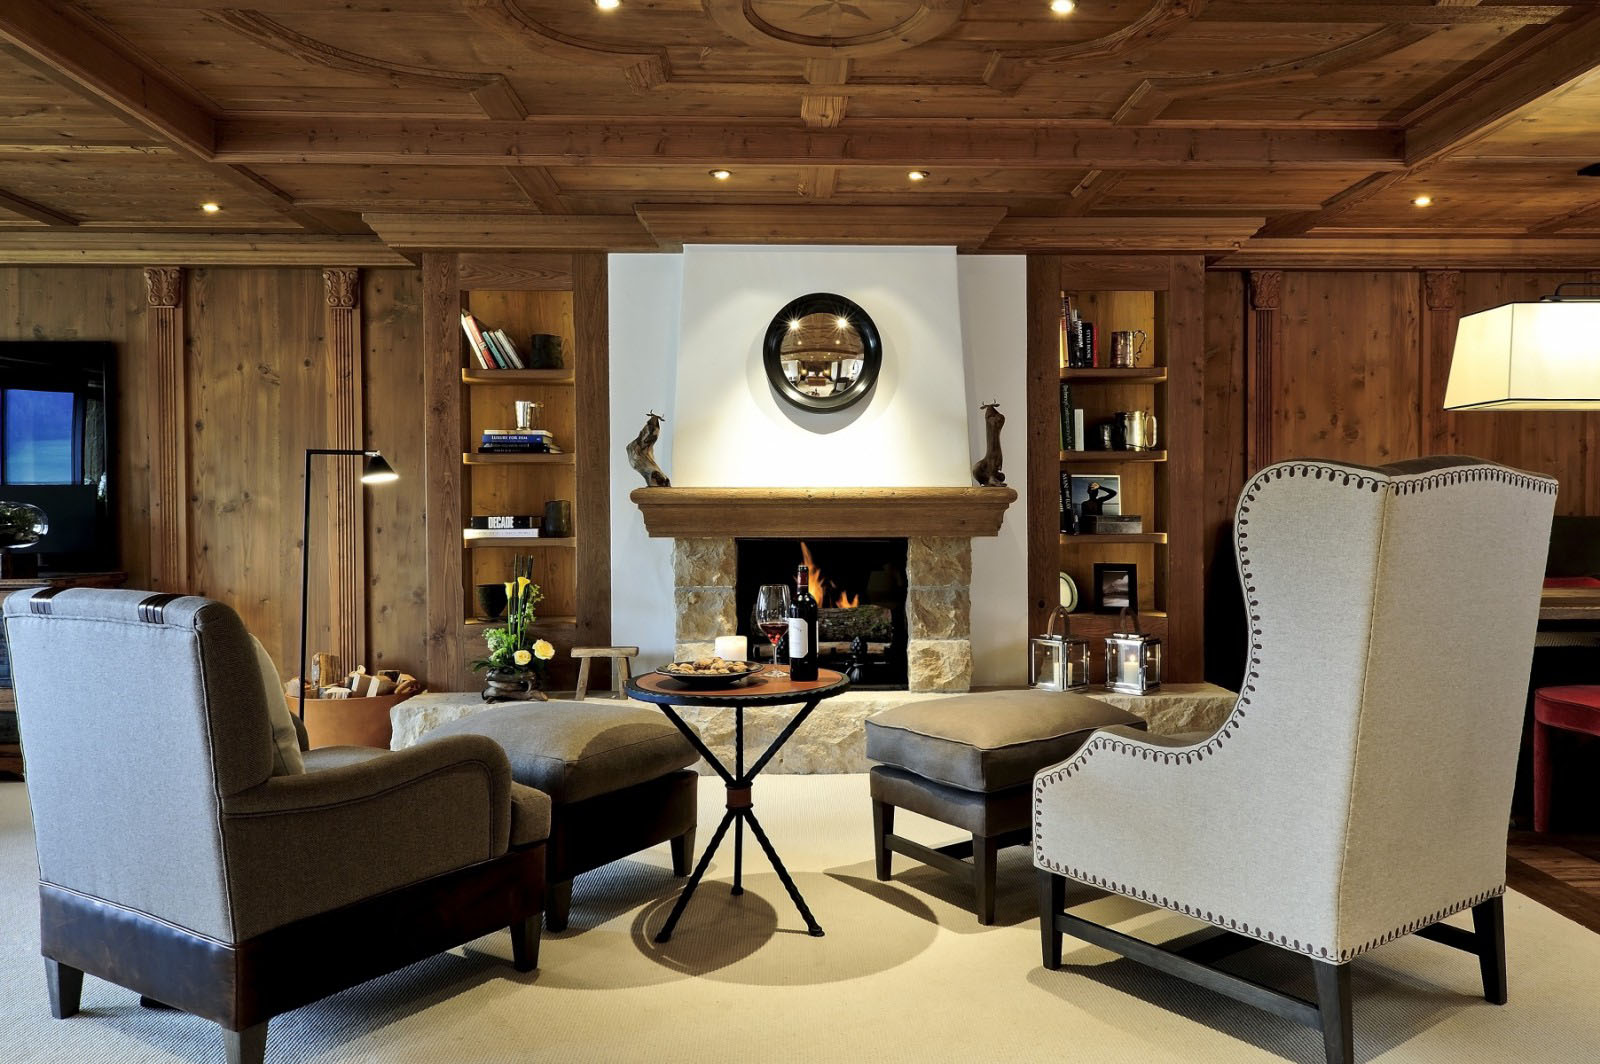 Stone Fireplace with Wood Mantel and Wood Panel Walls & Ceilings